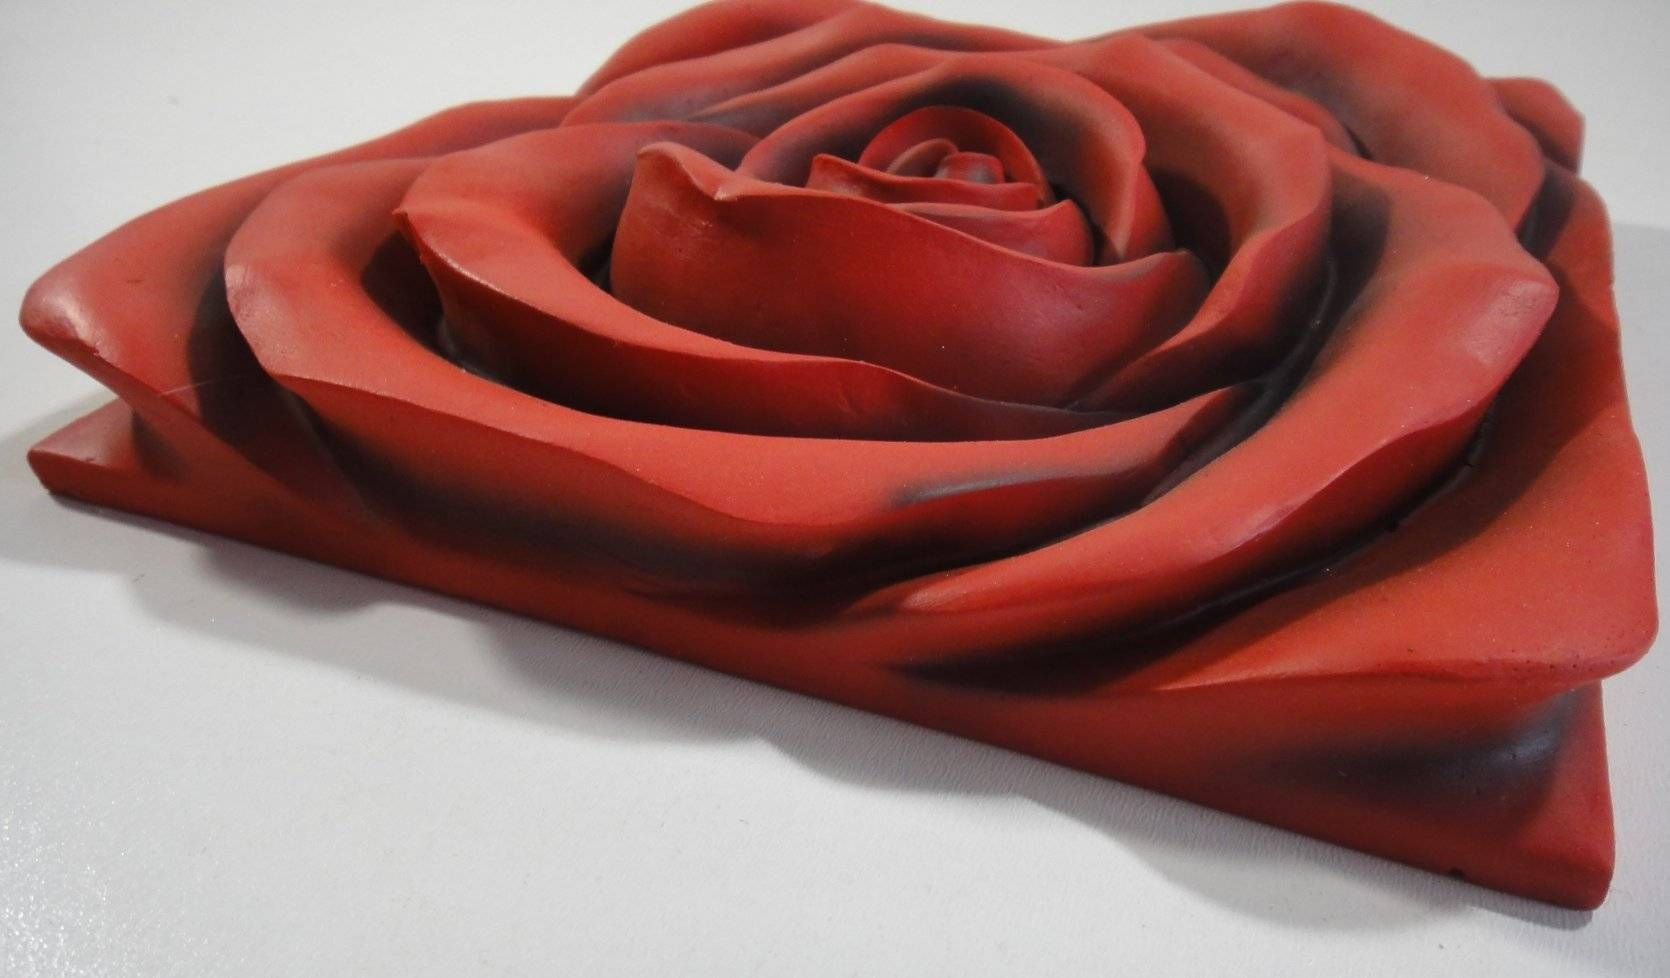 Wall Art Design: Resin Wall Art Beautiful Contemporary 3D Resin With Best And Newest Red Rose Wall Art (View 11 of 20)